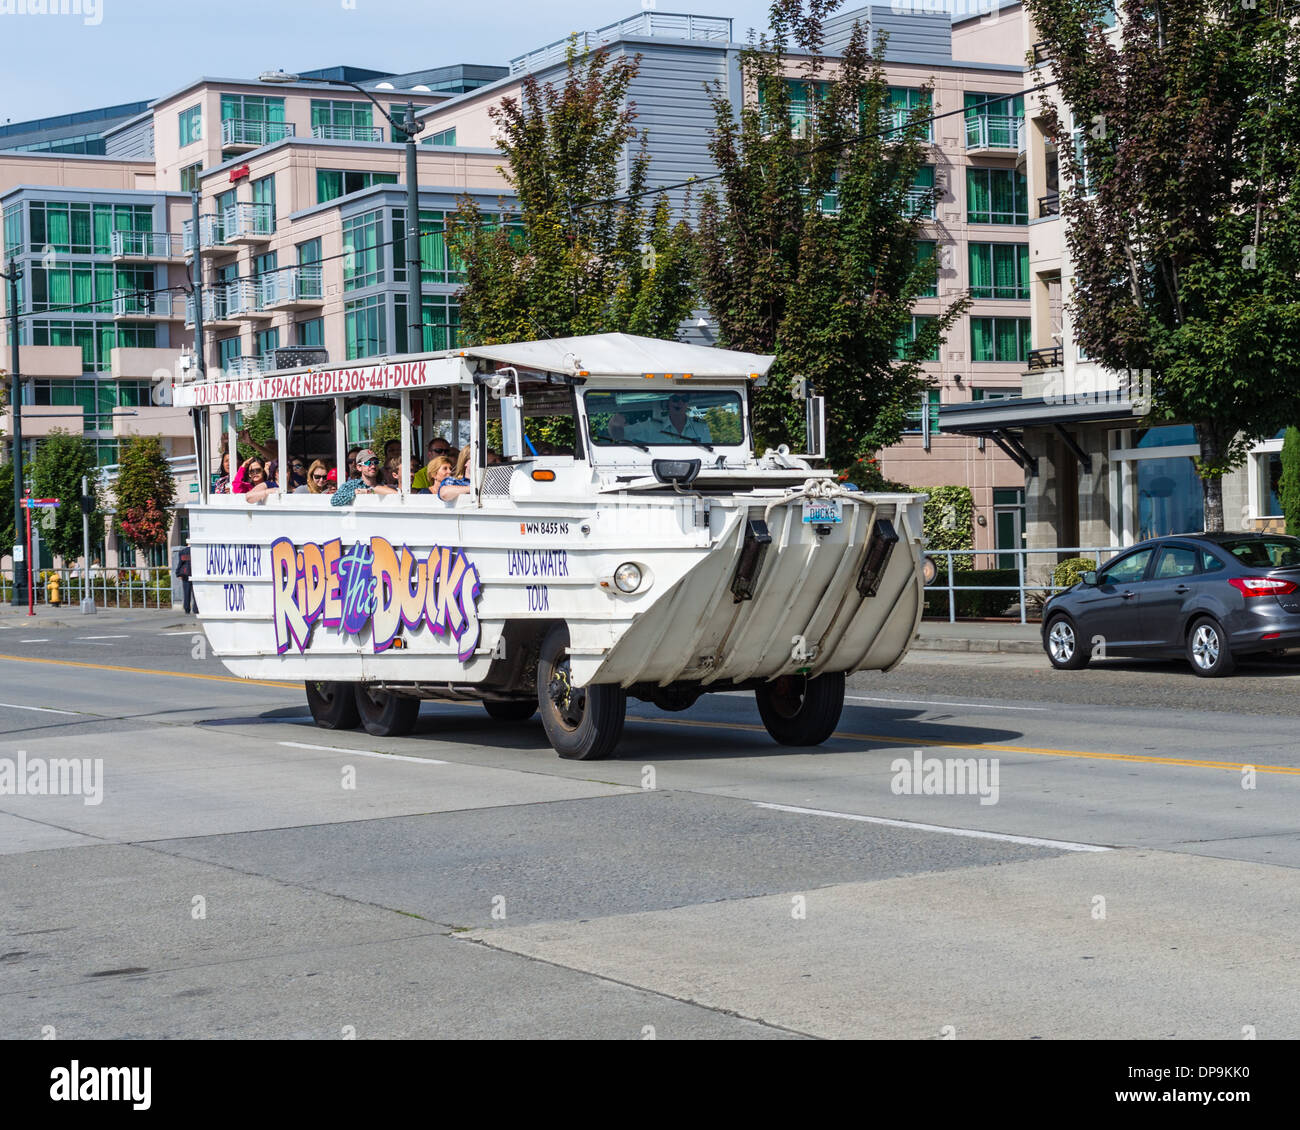 Duck tour vehicle with tourists near the waterfront Port of Seattle.  Seattle, Washington - Stock Image